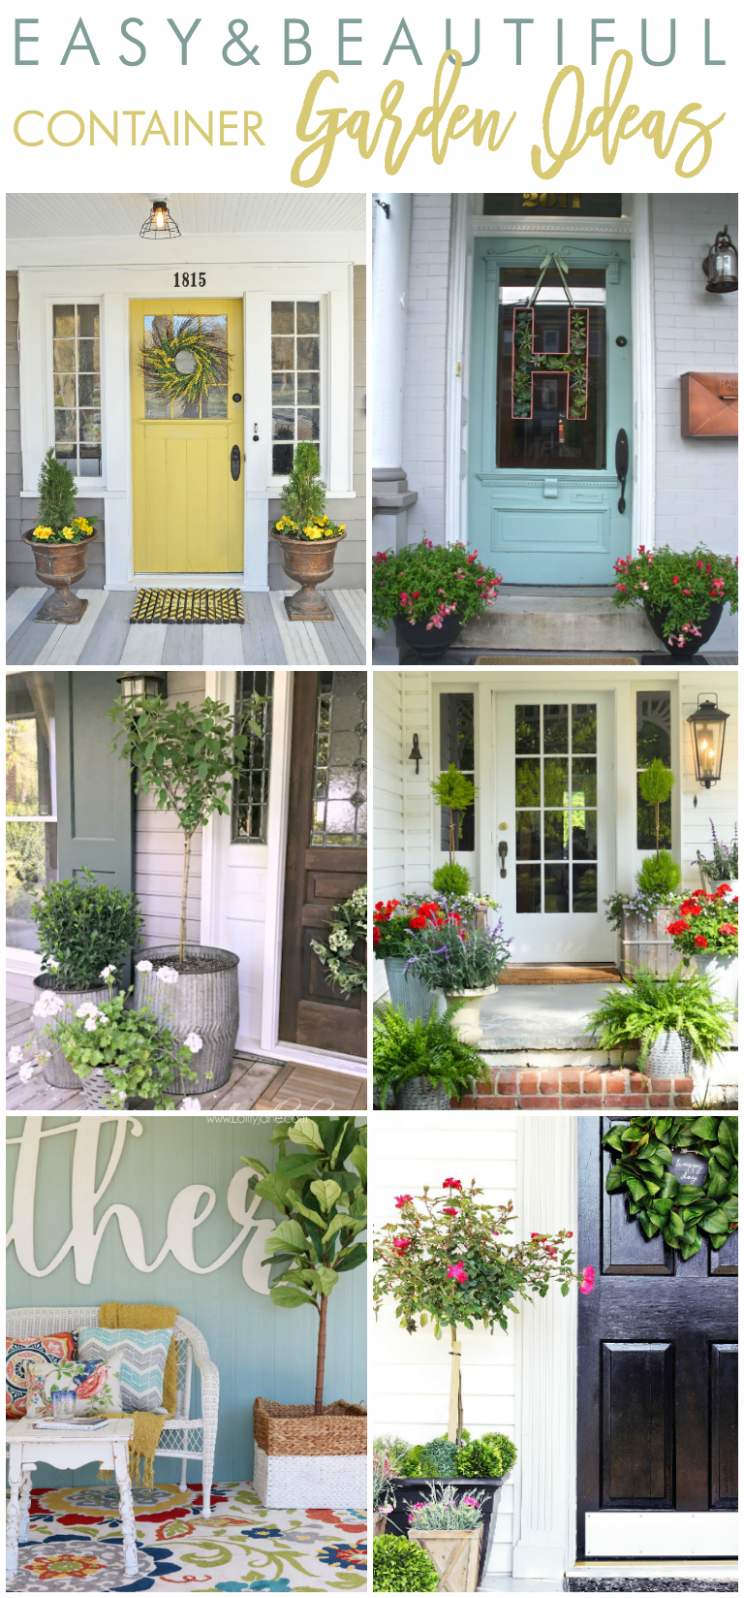 Easy and Beautiful Container Garden Ideas for Your Porch | Porch ..